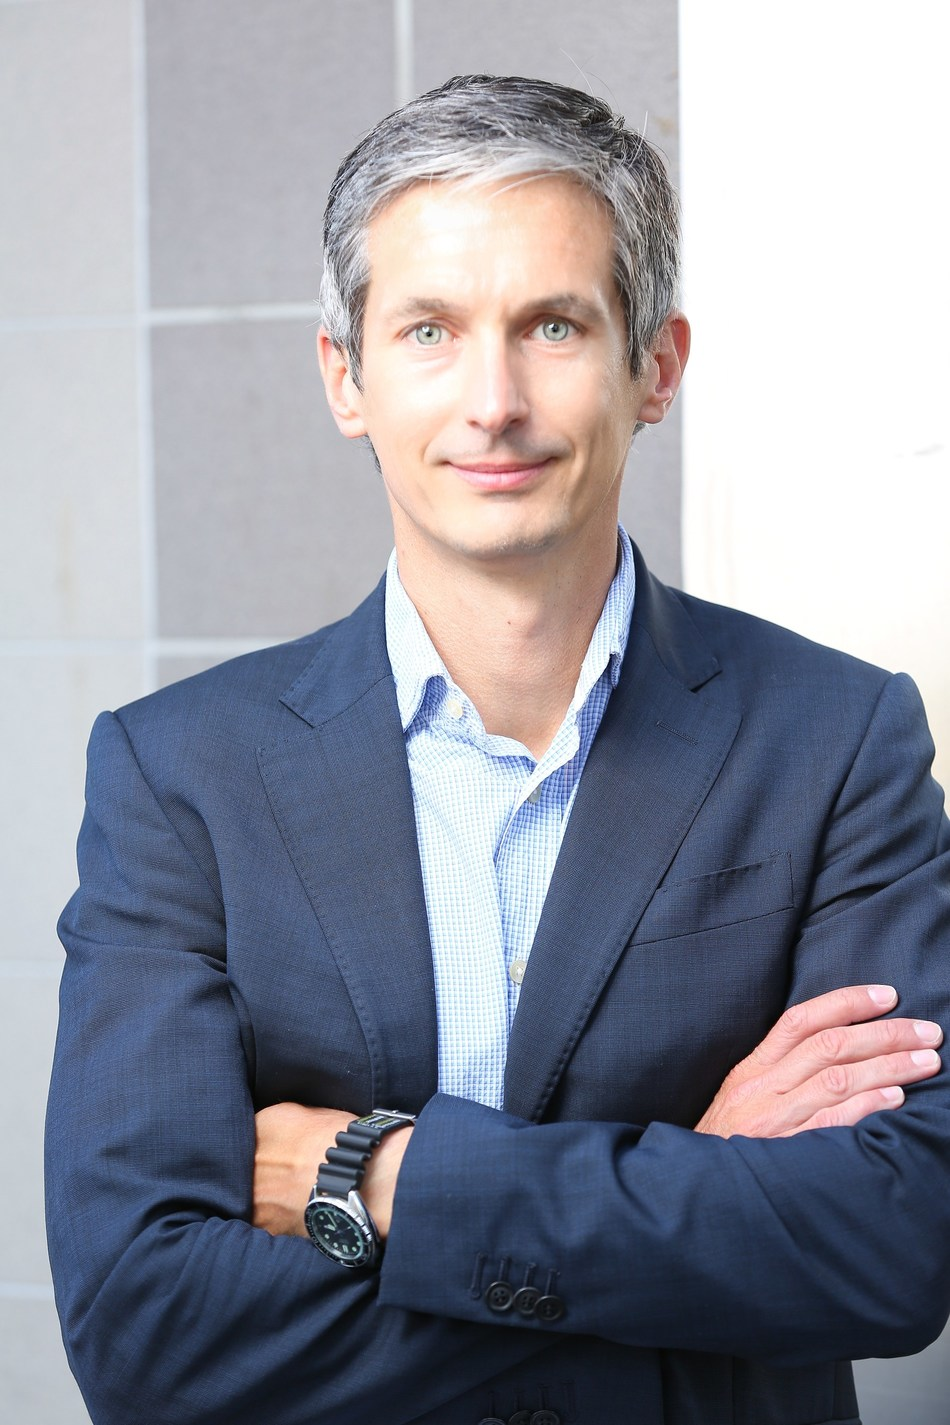 Andreas Bodczek empowers the IDnow team as new CEO.